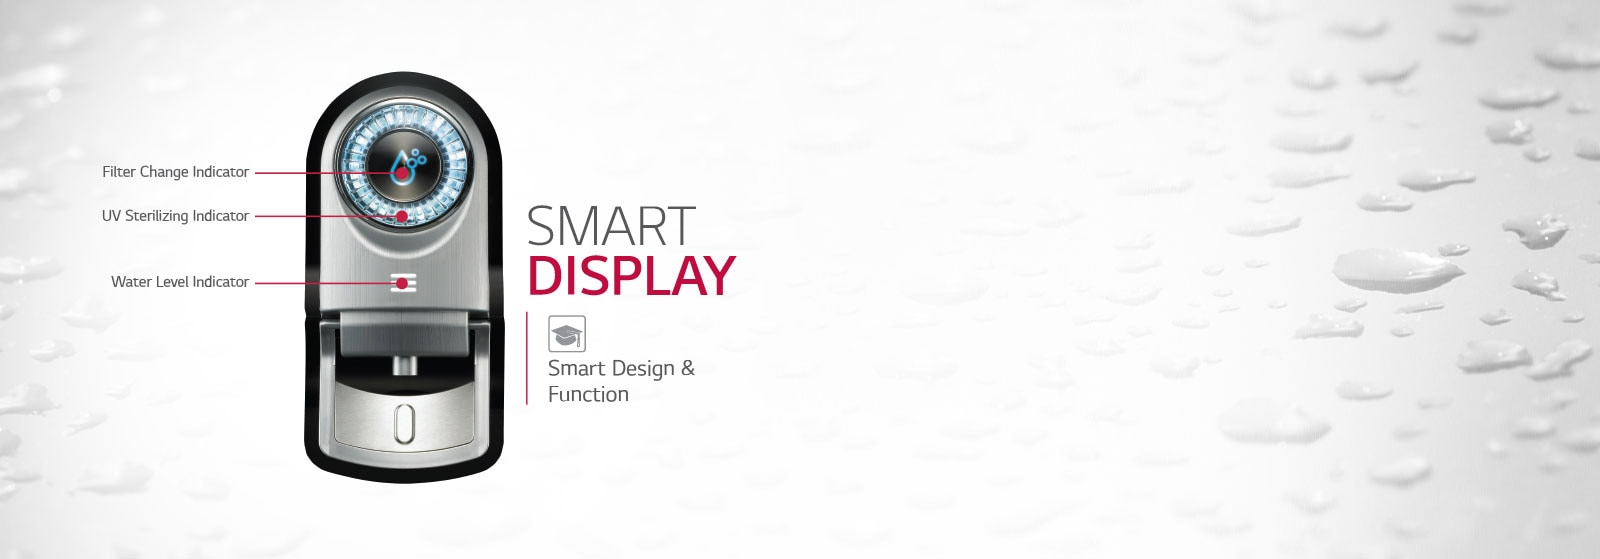 LG Water Purifier Smart Display